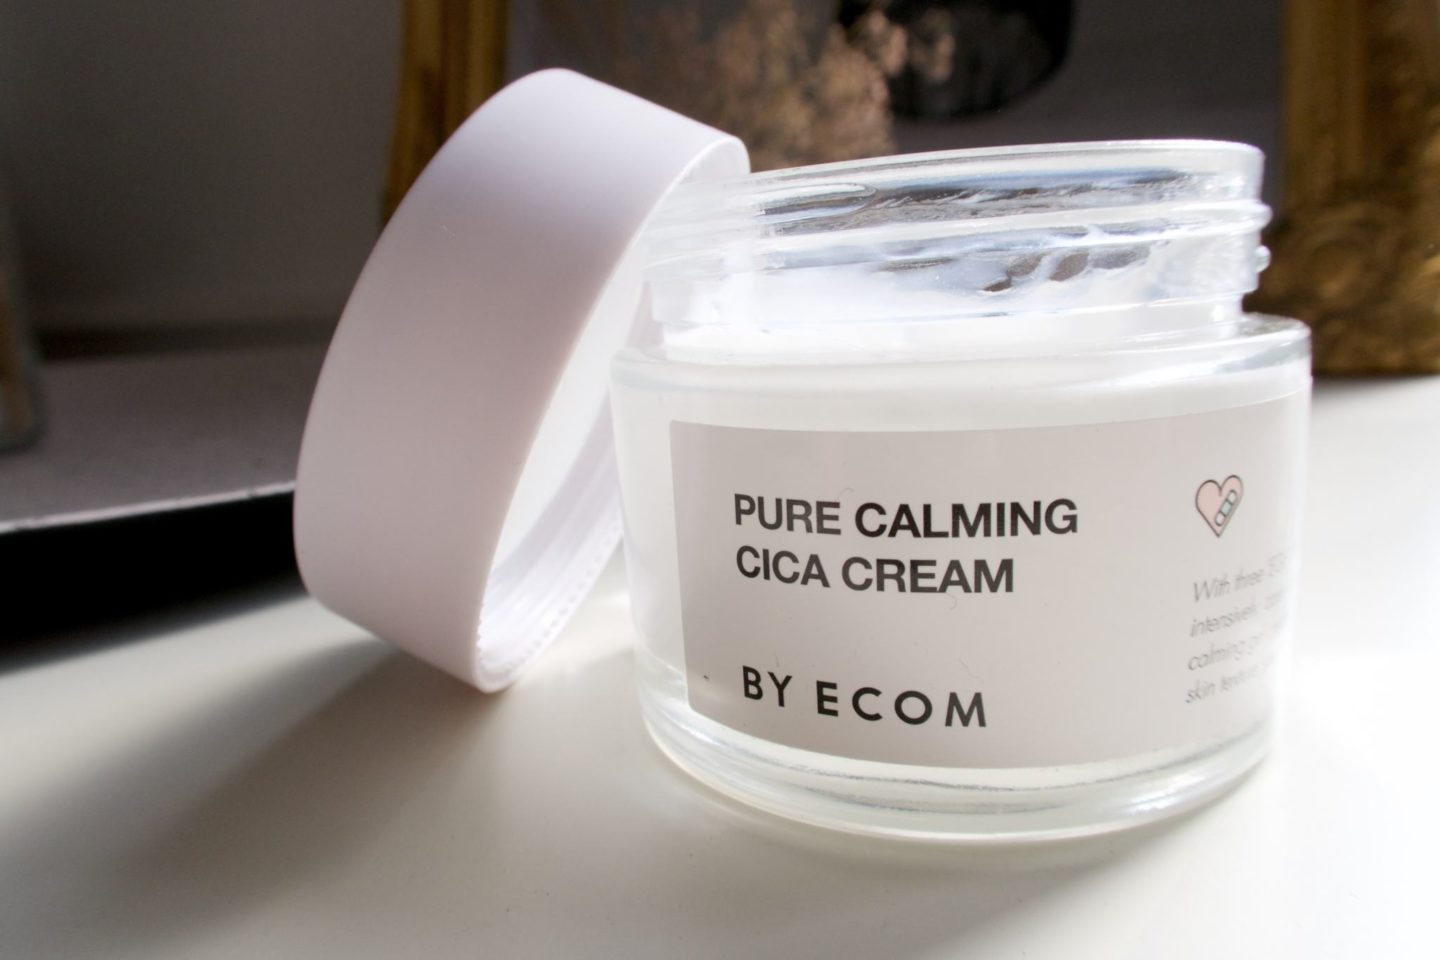 Pure Calming Cica Cream By Ecom.   #skincare #koreanskincare #beauty #soins #beaute #byecom